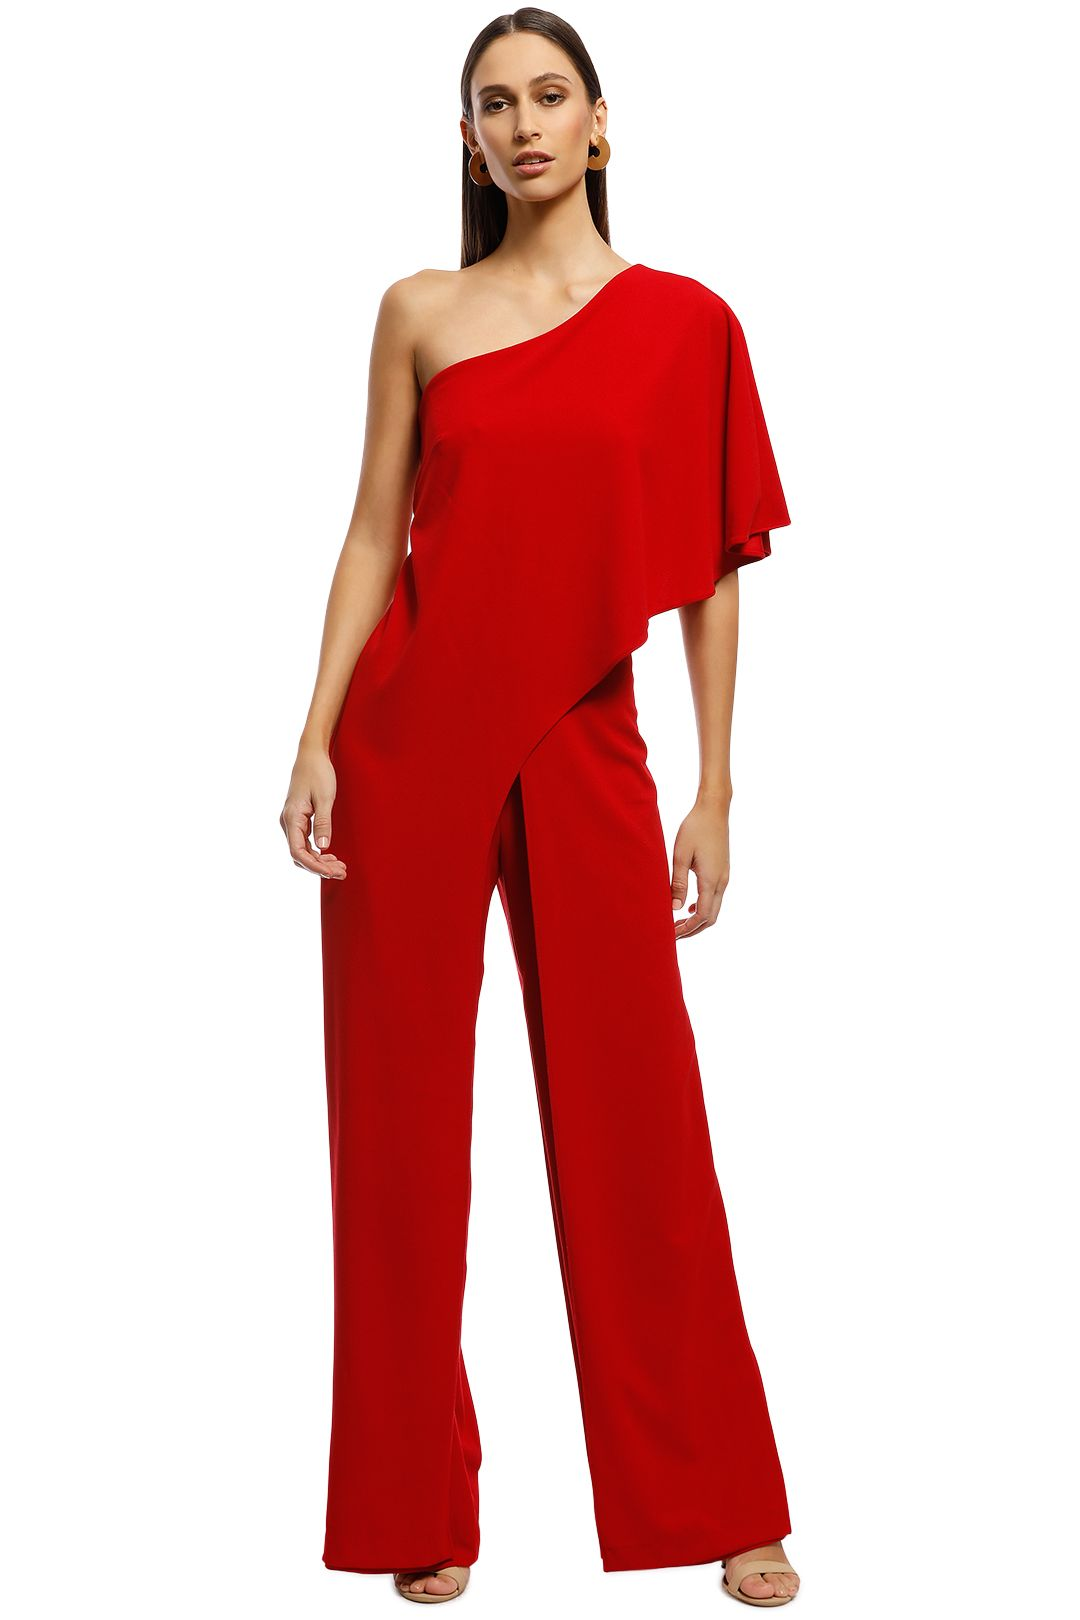 Montique - Harper Jumpsuit - Red - Front